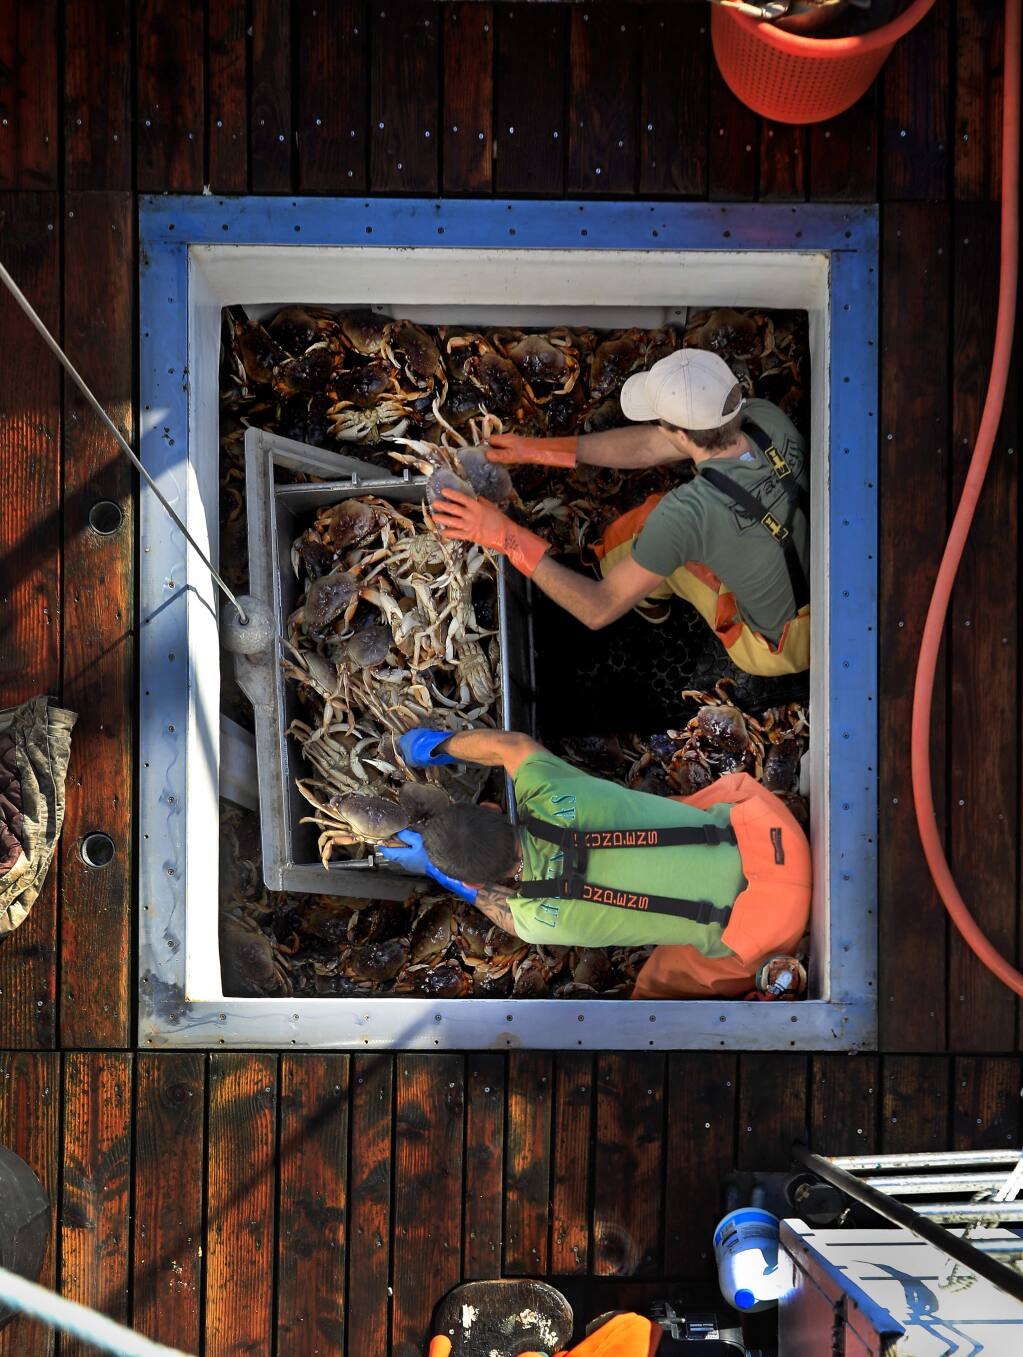 Tim Bentley, top, and Martin Blaney offload Dungeness crab from the hold of the Seastar at Spud Point Marina, Monday, Dec. 30, 2019 in Bodega Bay. (Kent Porter / The Press Democrat) 2019